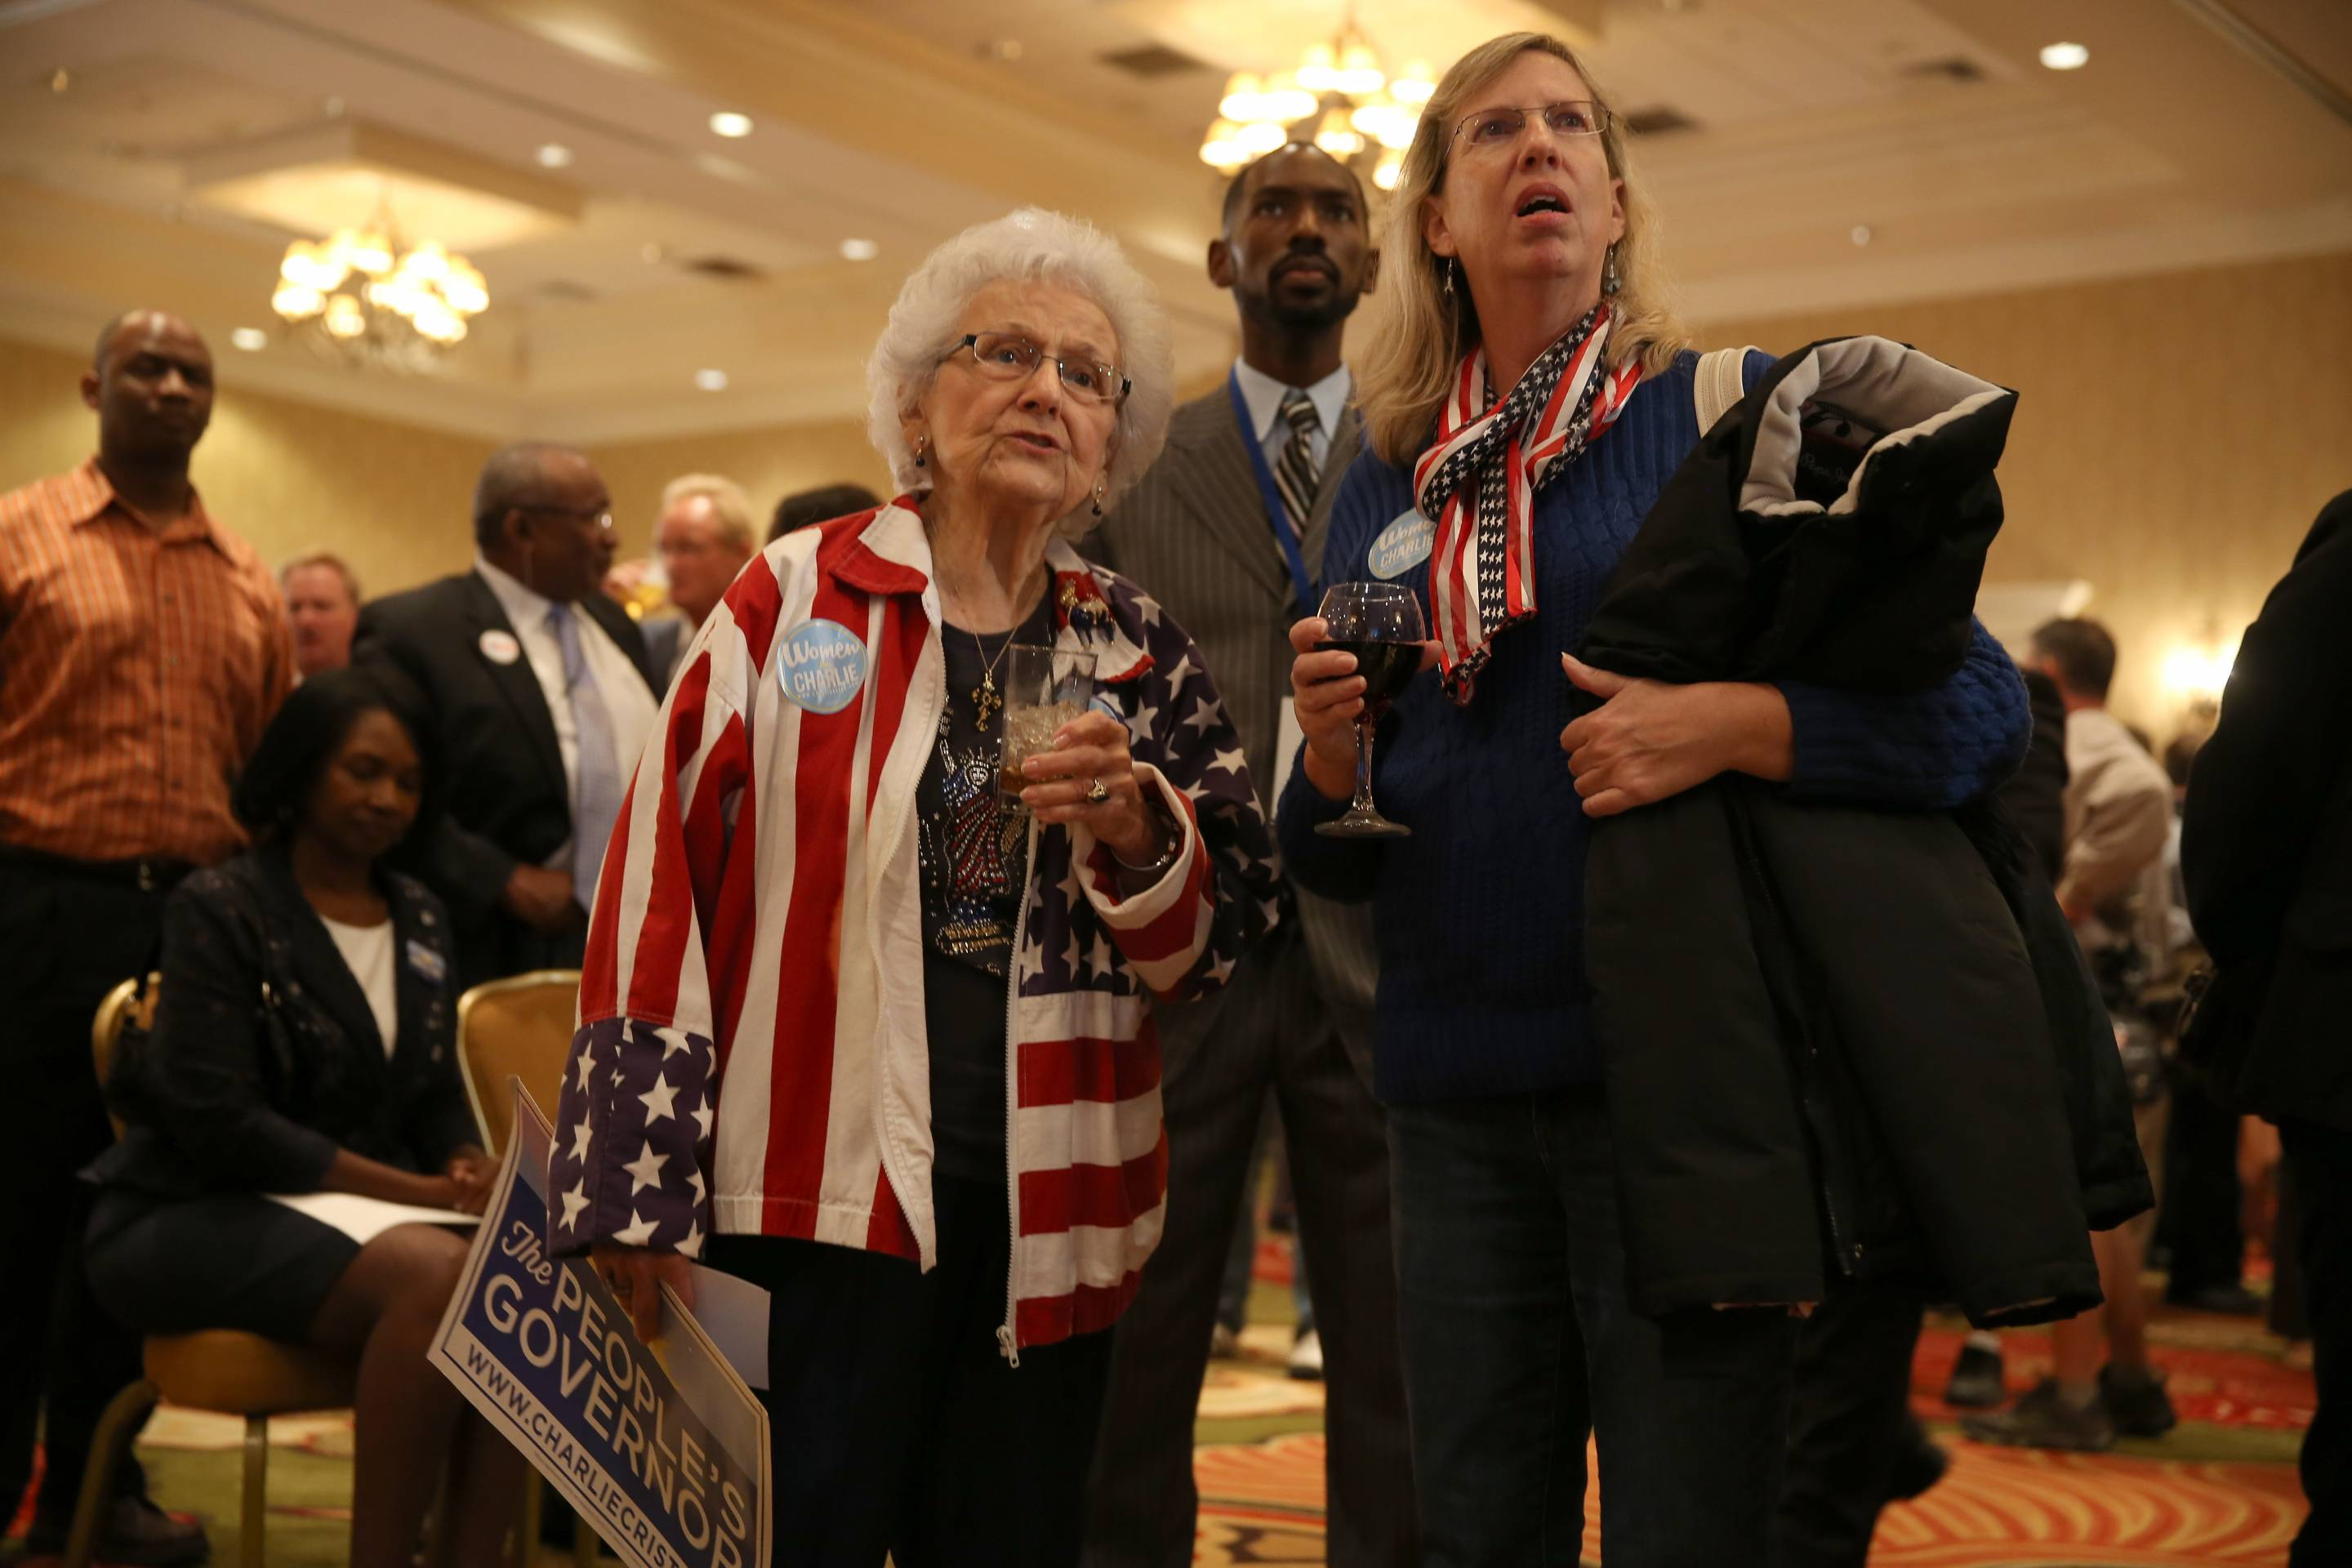 Former Florida Gov. And Gubernatorial Candidate Charlie Crist Attends Election Night Rally